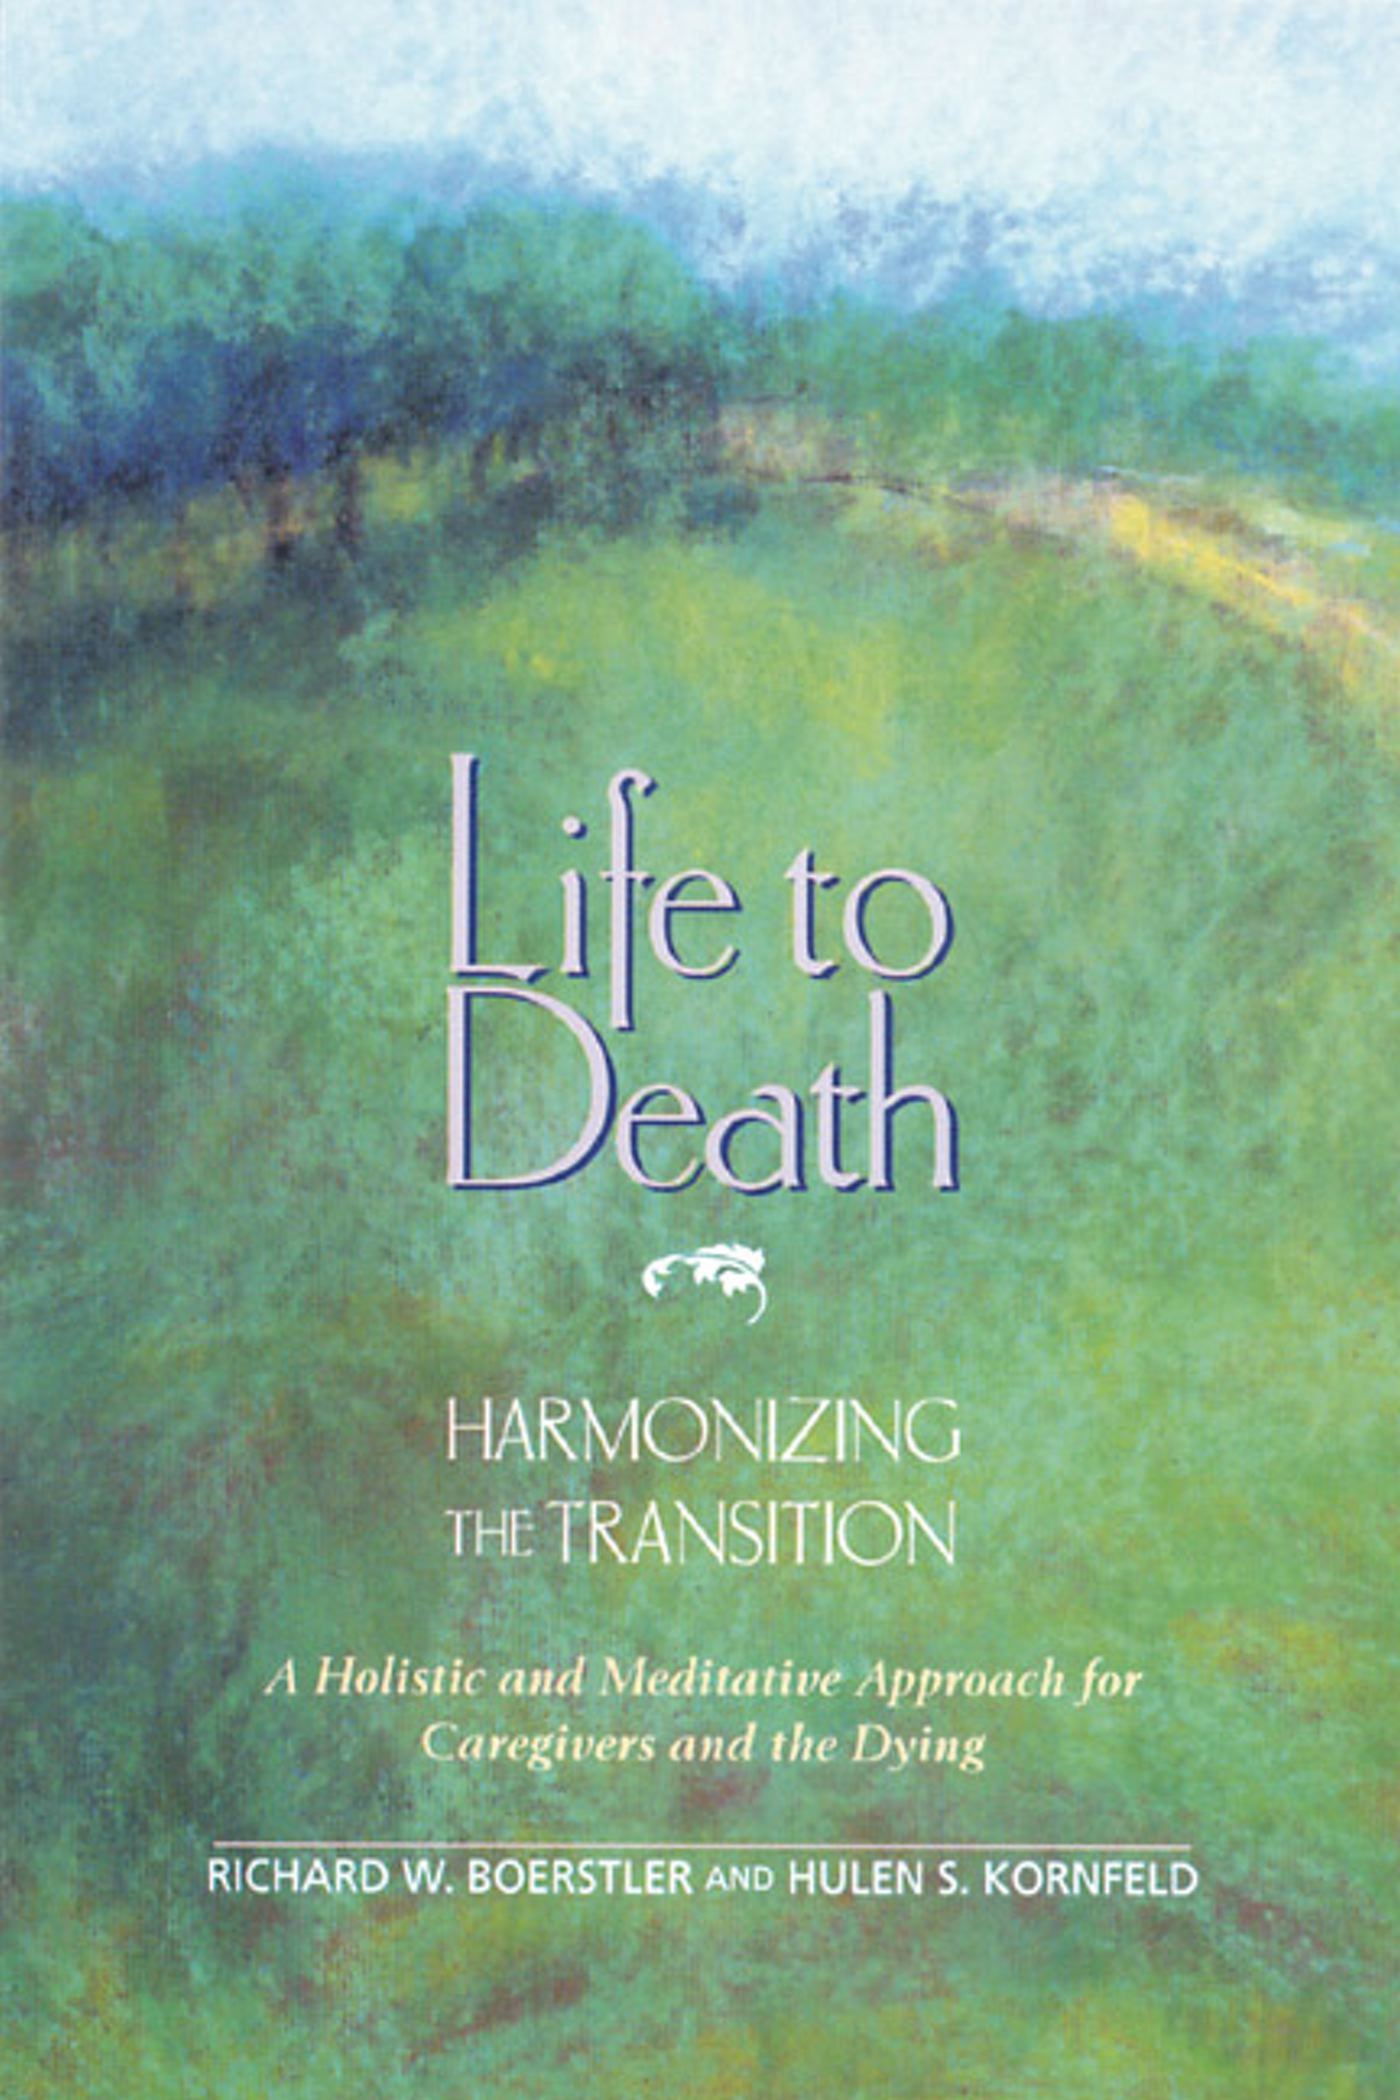 Life to death harmonizing the transition 9780892813292 hr